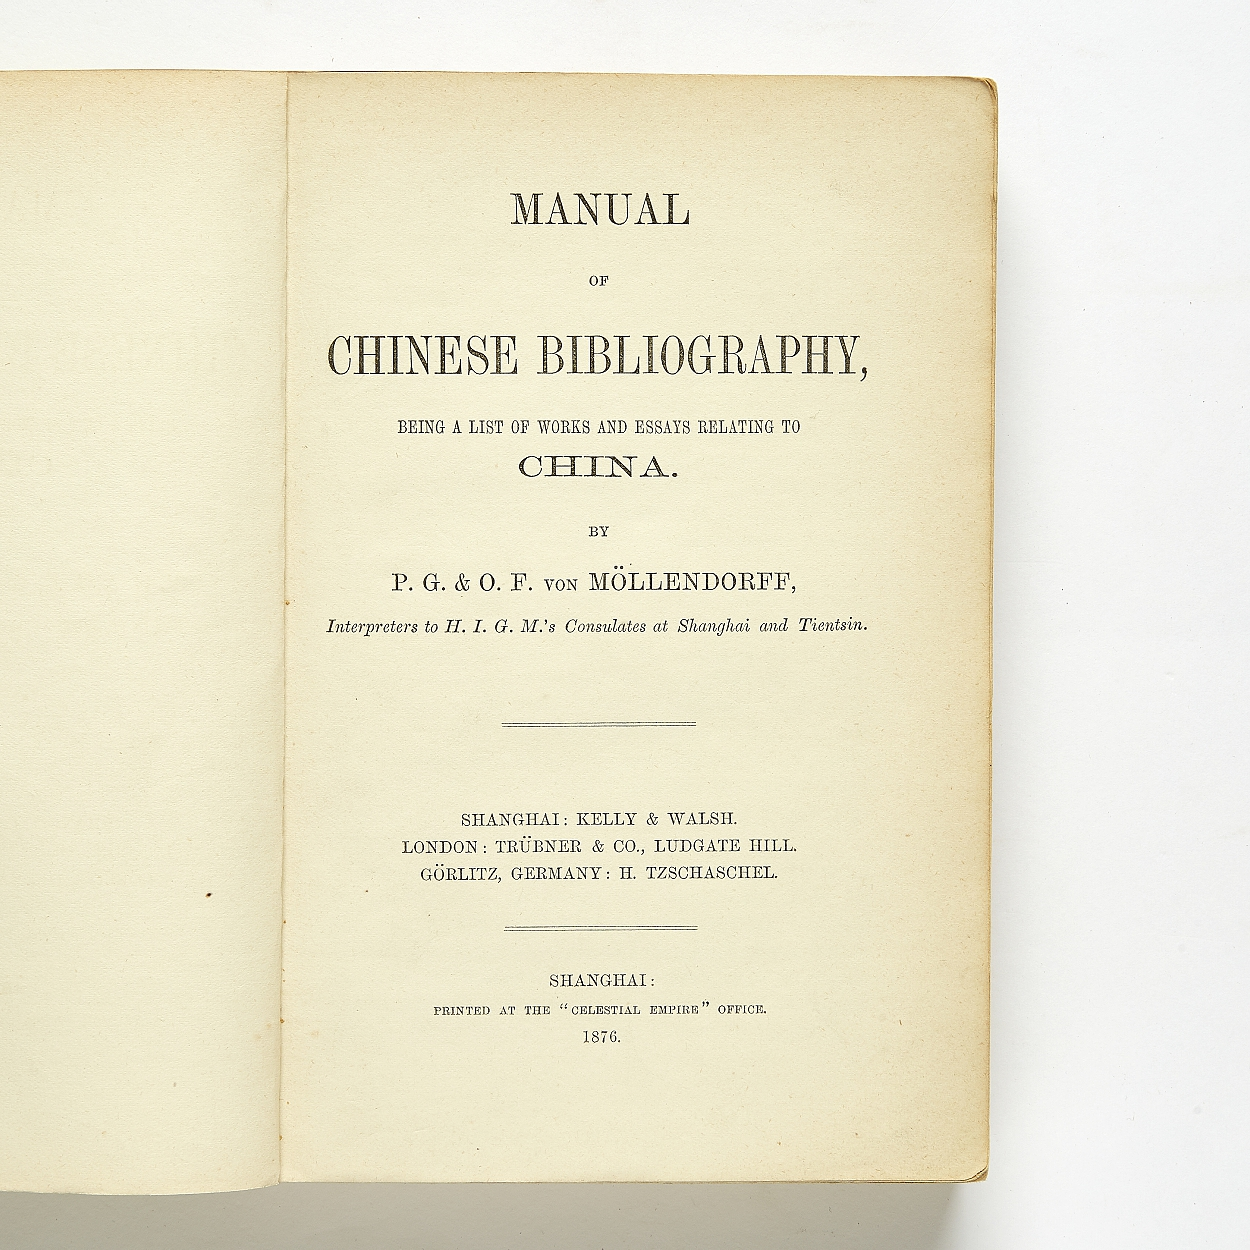 Möllendorff's Manual of Chinese bibliography